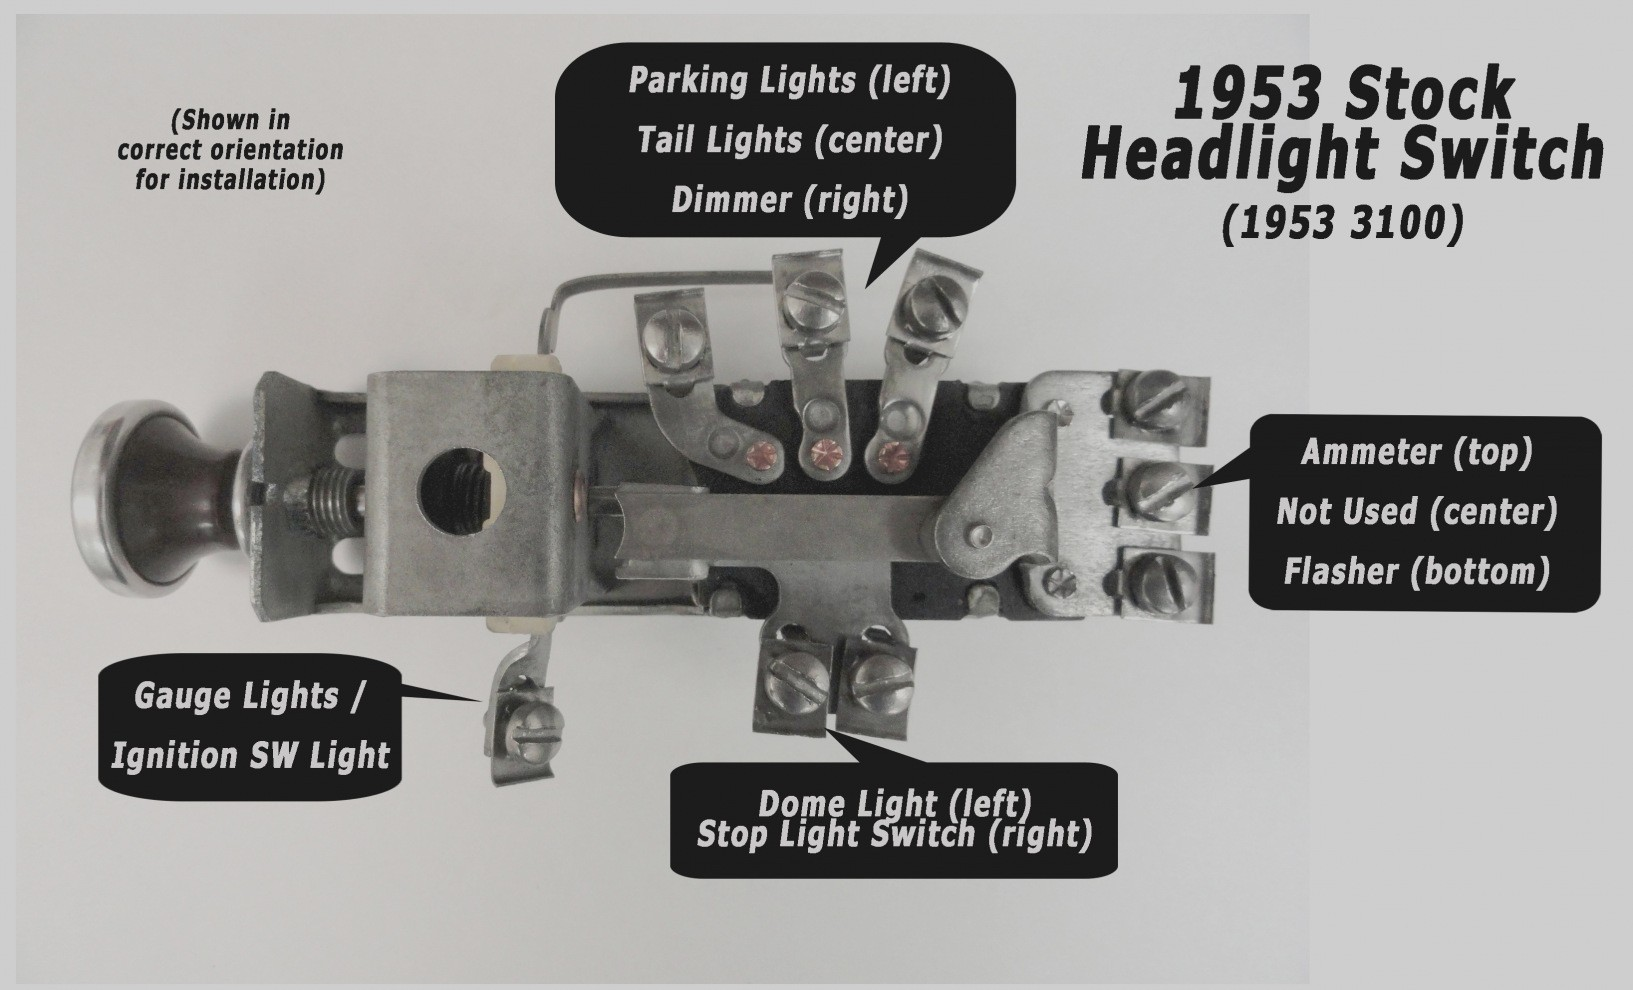 Headlight Switch Wiring Diagram Chevy Truck - Database ...